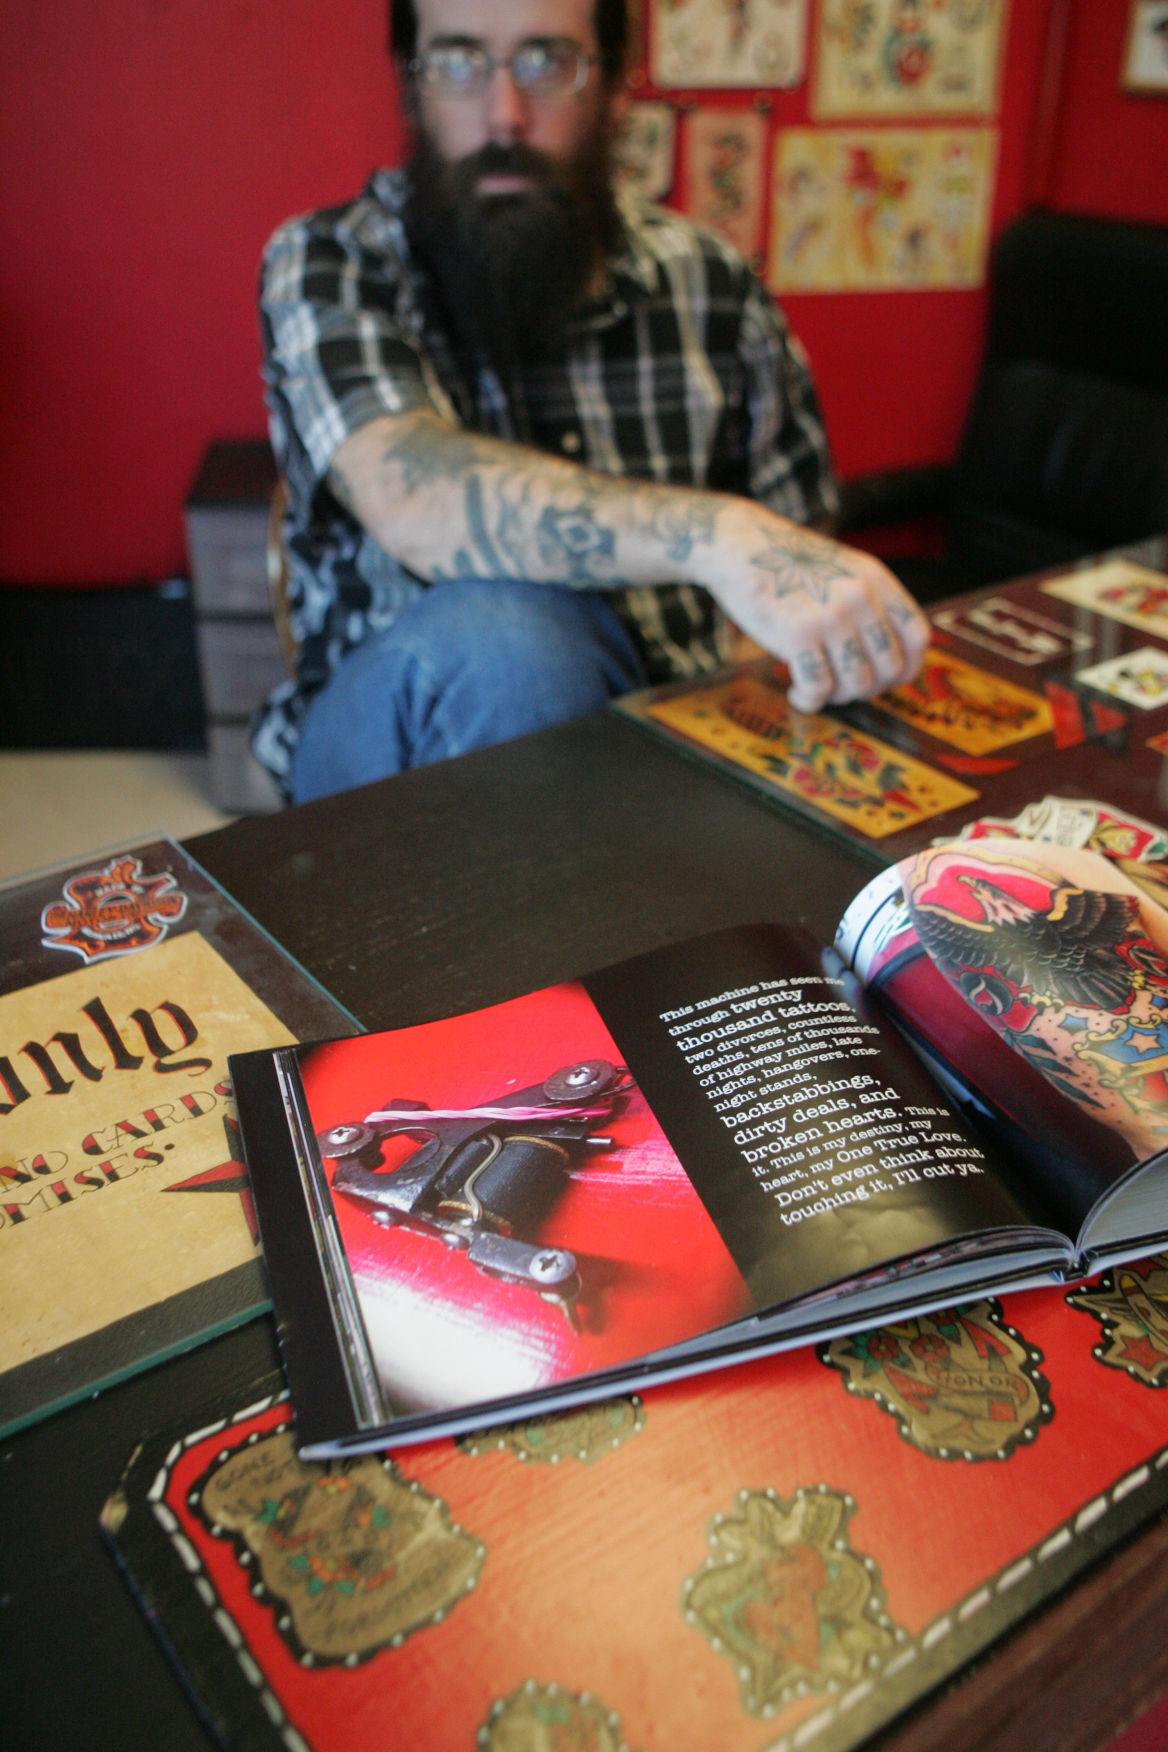 Frank robinson leaves mark on tattoo industry business for Tattoo shops in norman